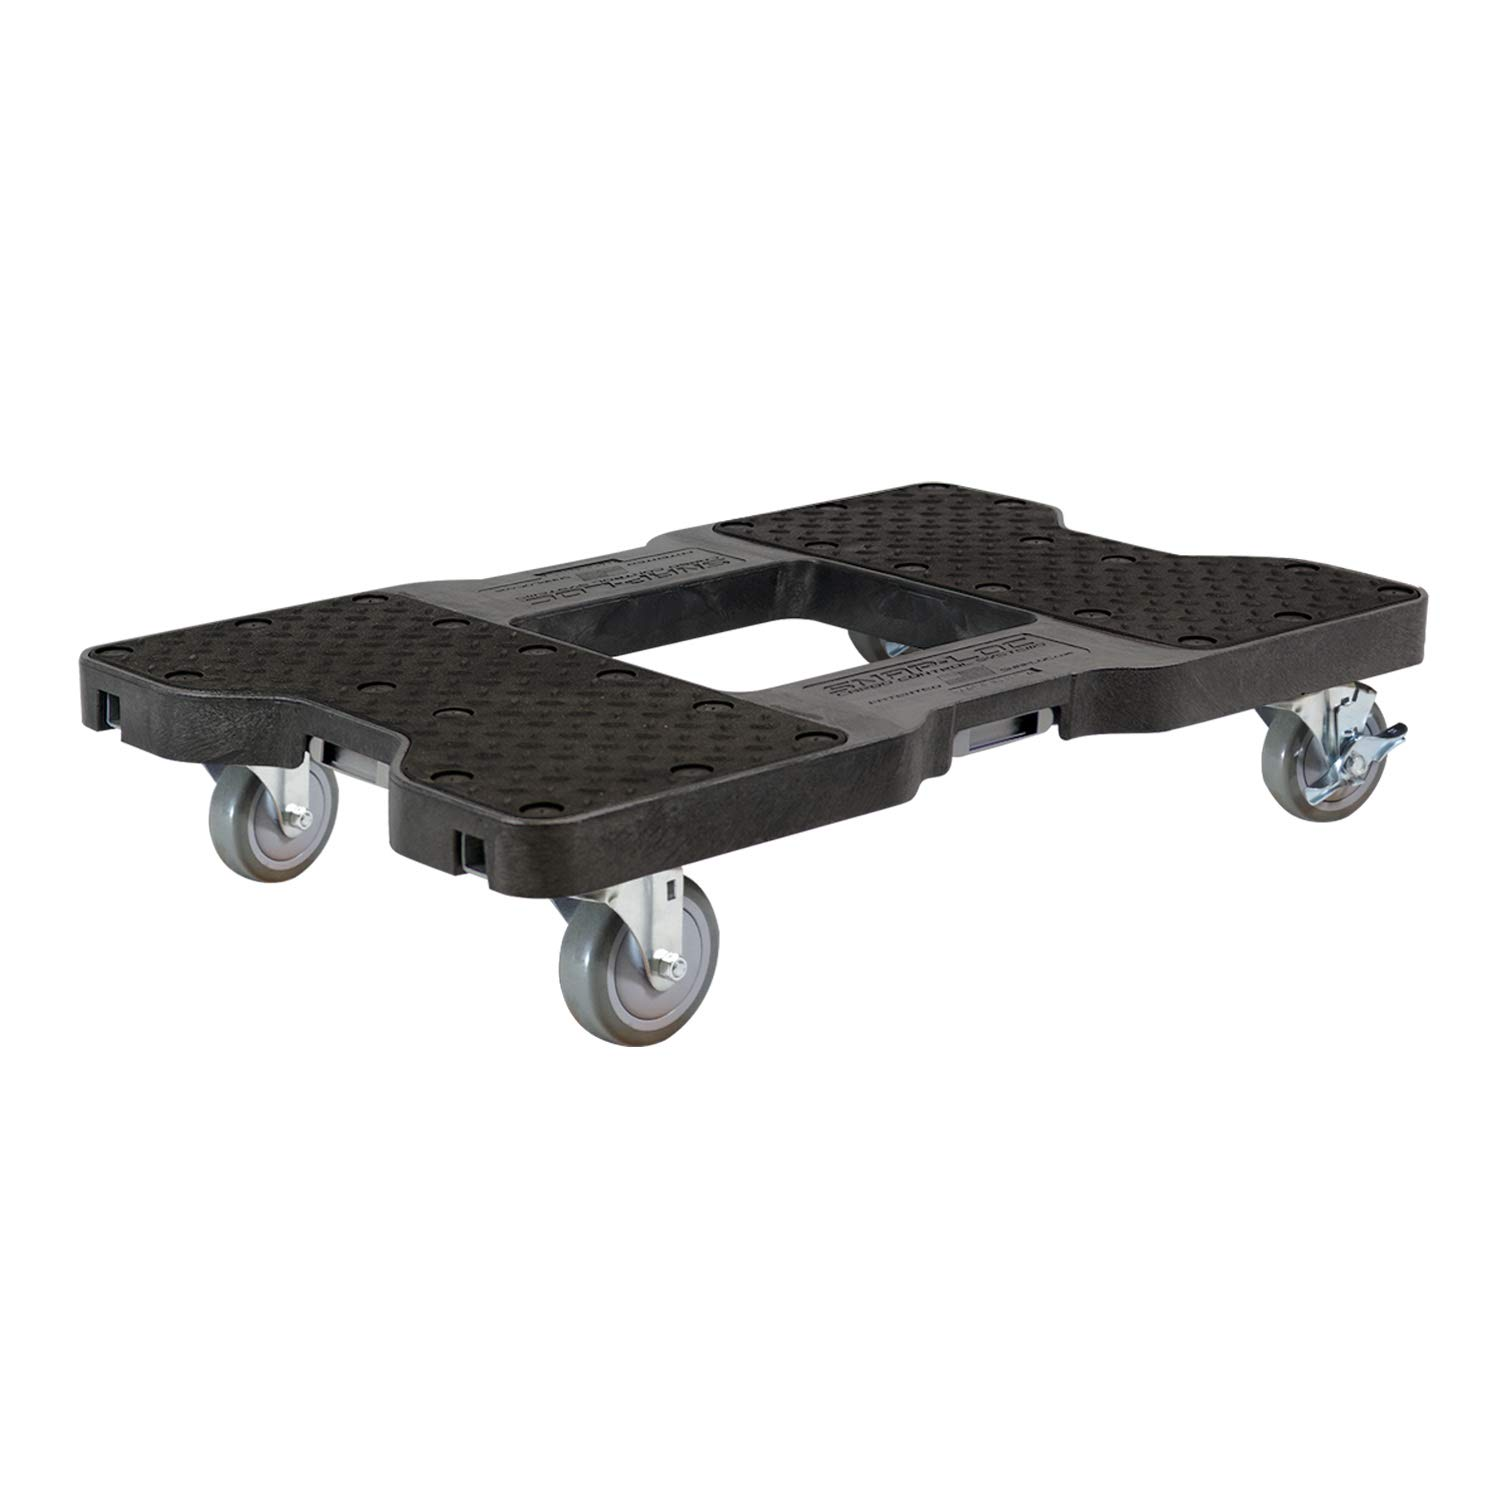 SNAP-LOC Dolly Black (USA!) with 1500 lb Capacity, Steel Frame, 4 inch Casters and Optional E-Strap Attachment